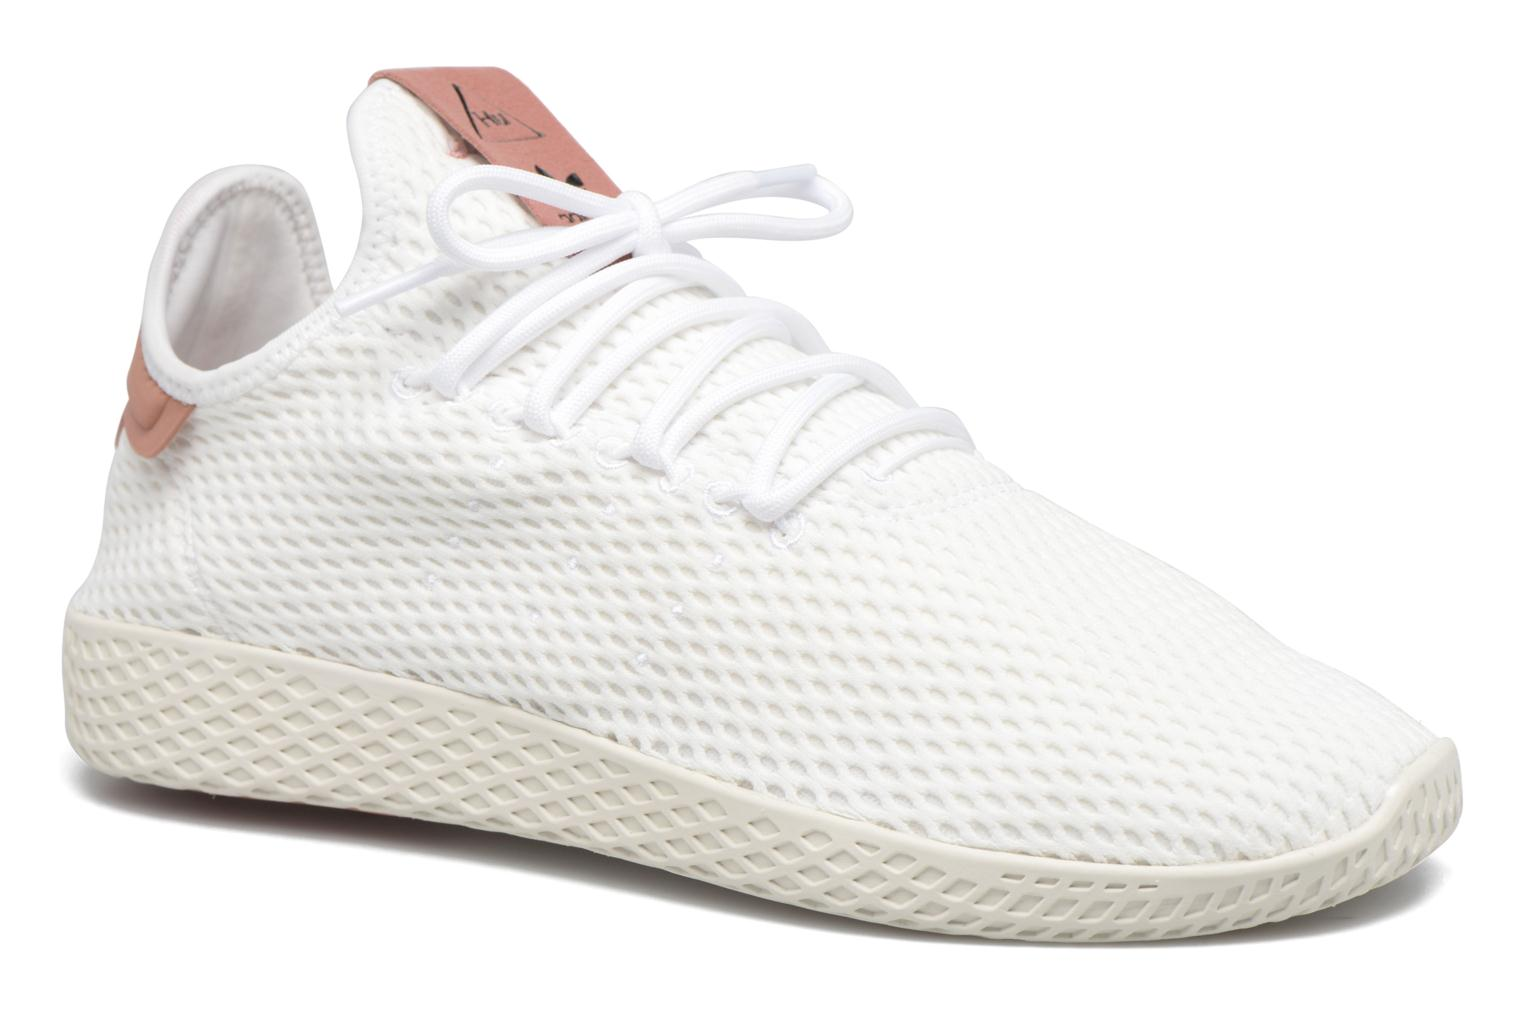 Pharrell Williams Tennis Hu Ftwbla/Ftwbla/Roscru